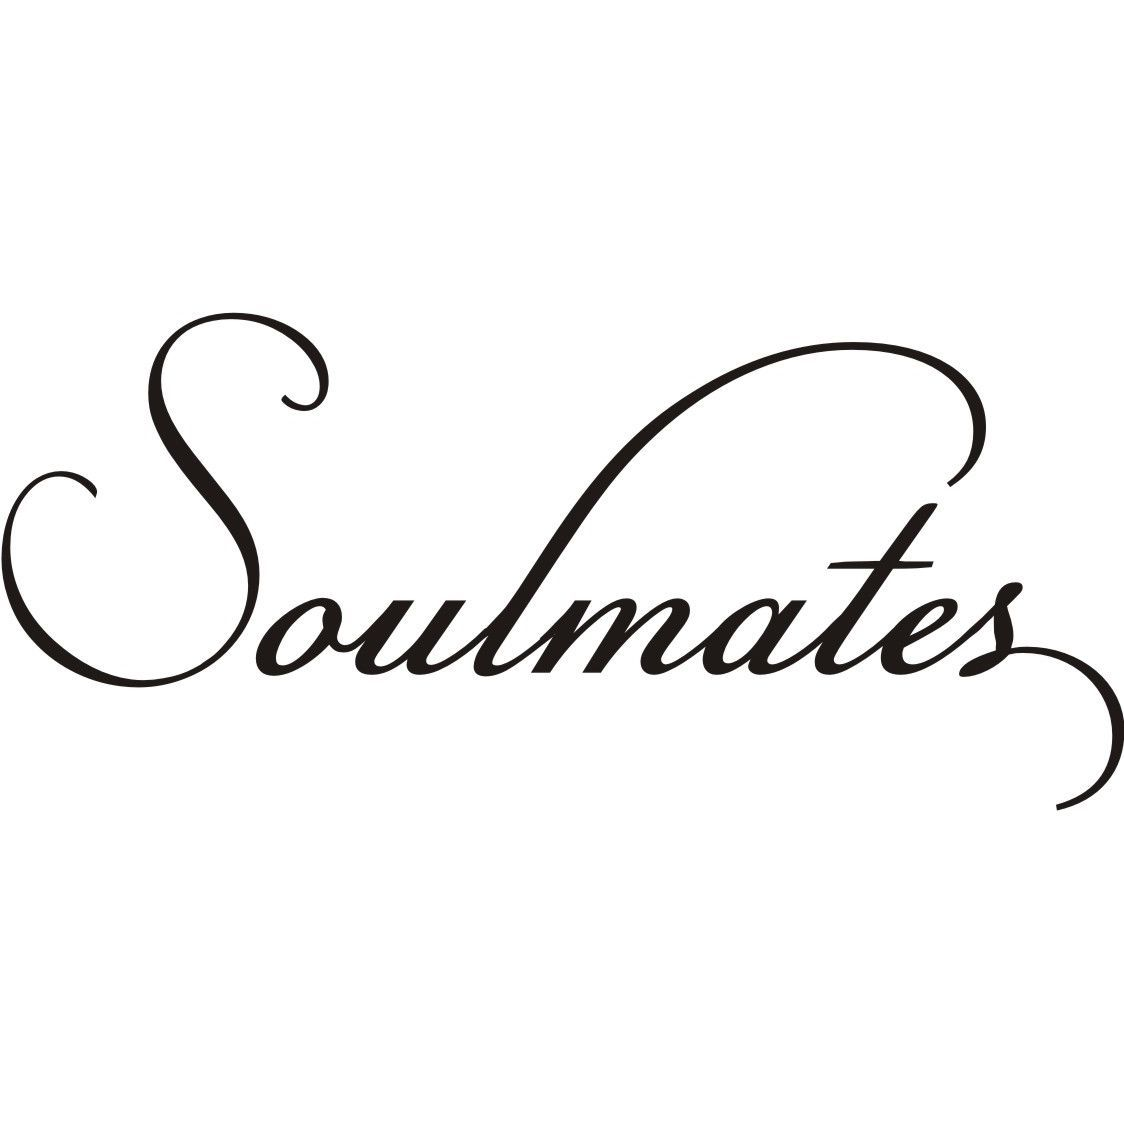 Design On Style Soulmates Vinyl Wall Art Lettering Decor Mural - How to make vinyl wall decals stick